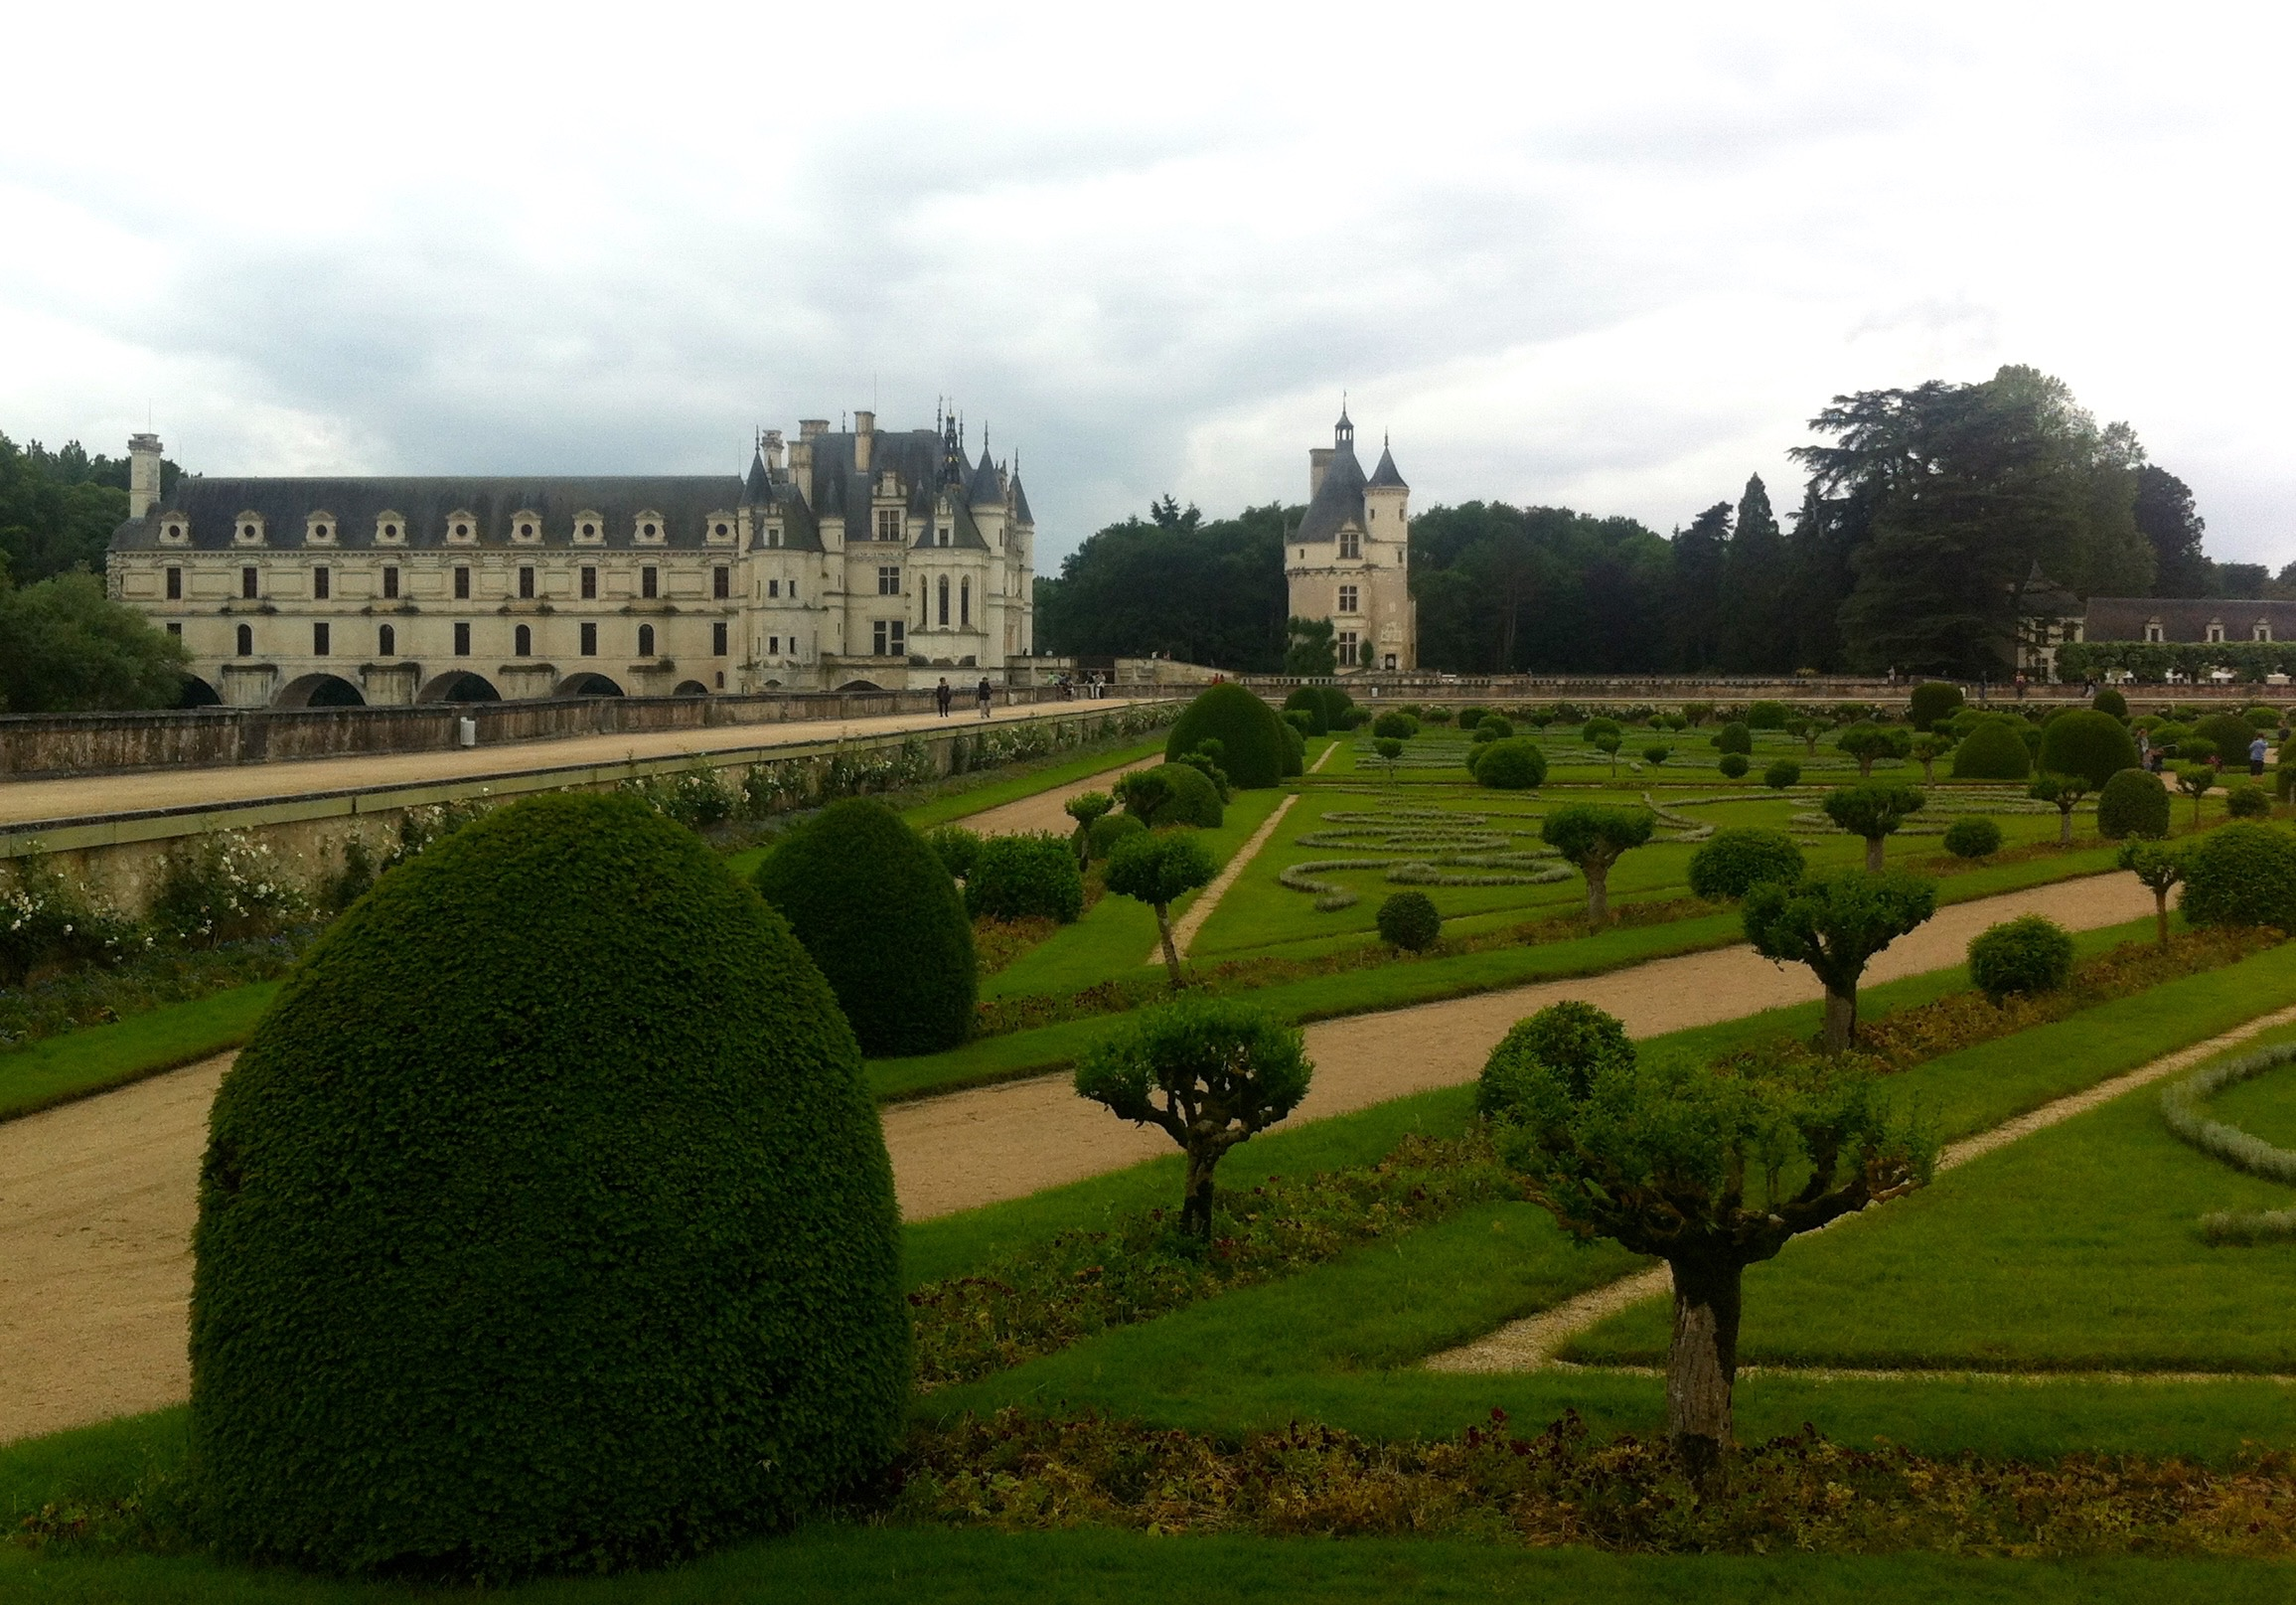 Looking towards the chateau de chenonceau over diane de poitiers garden from the raised walkway